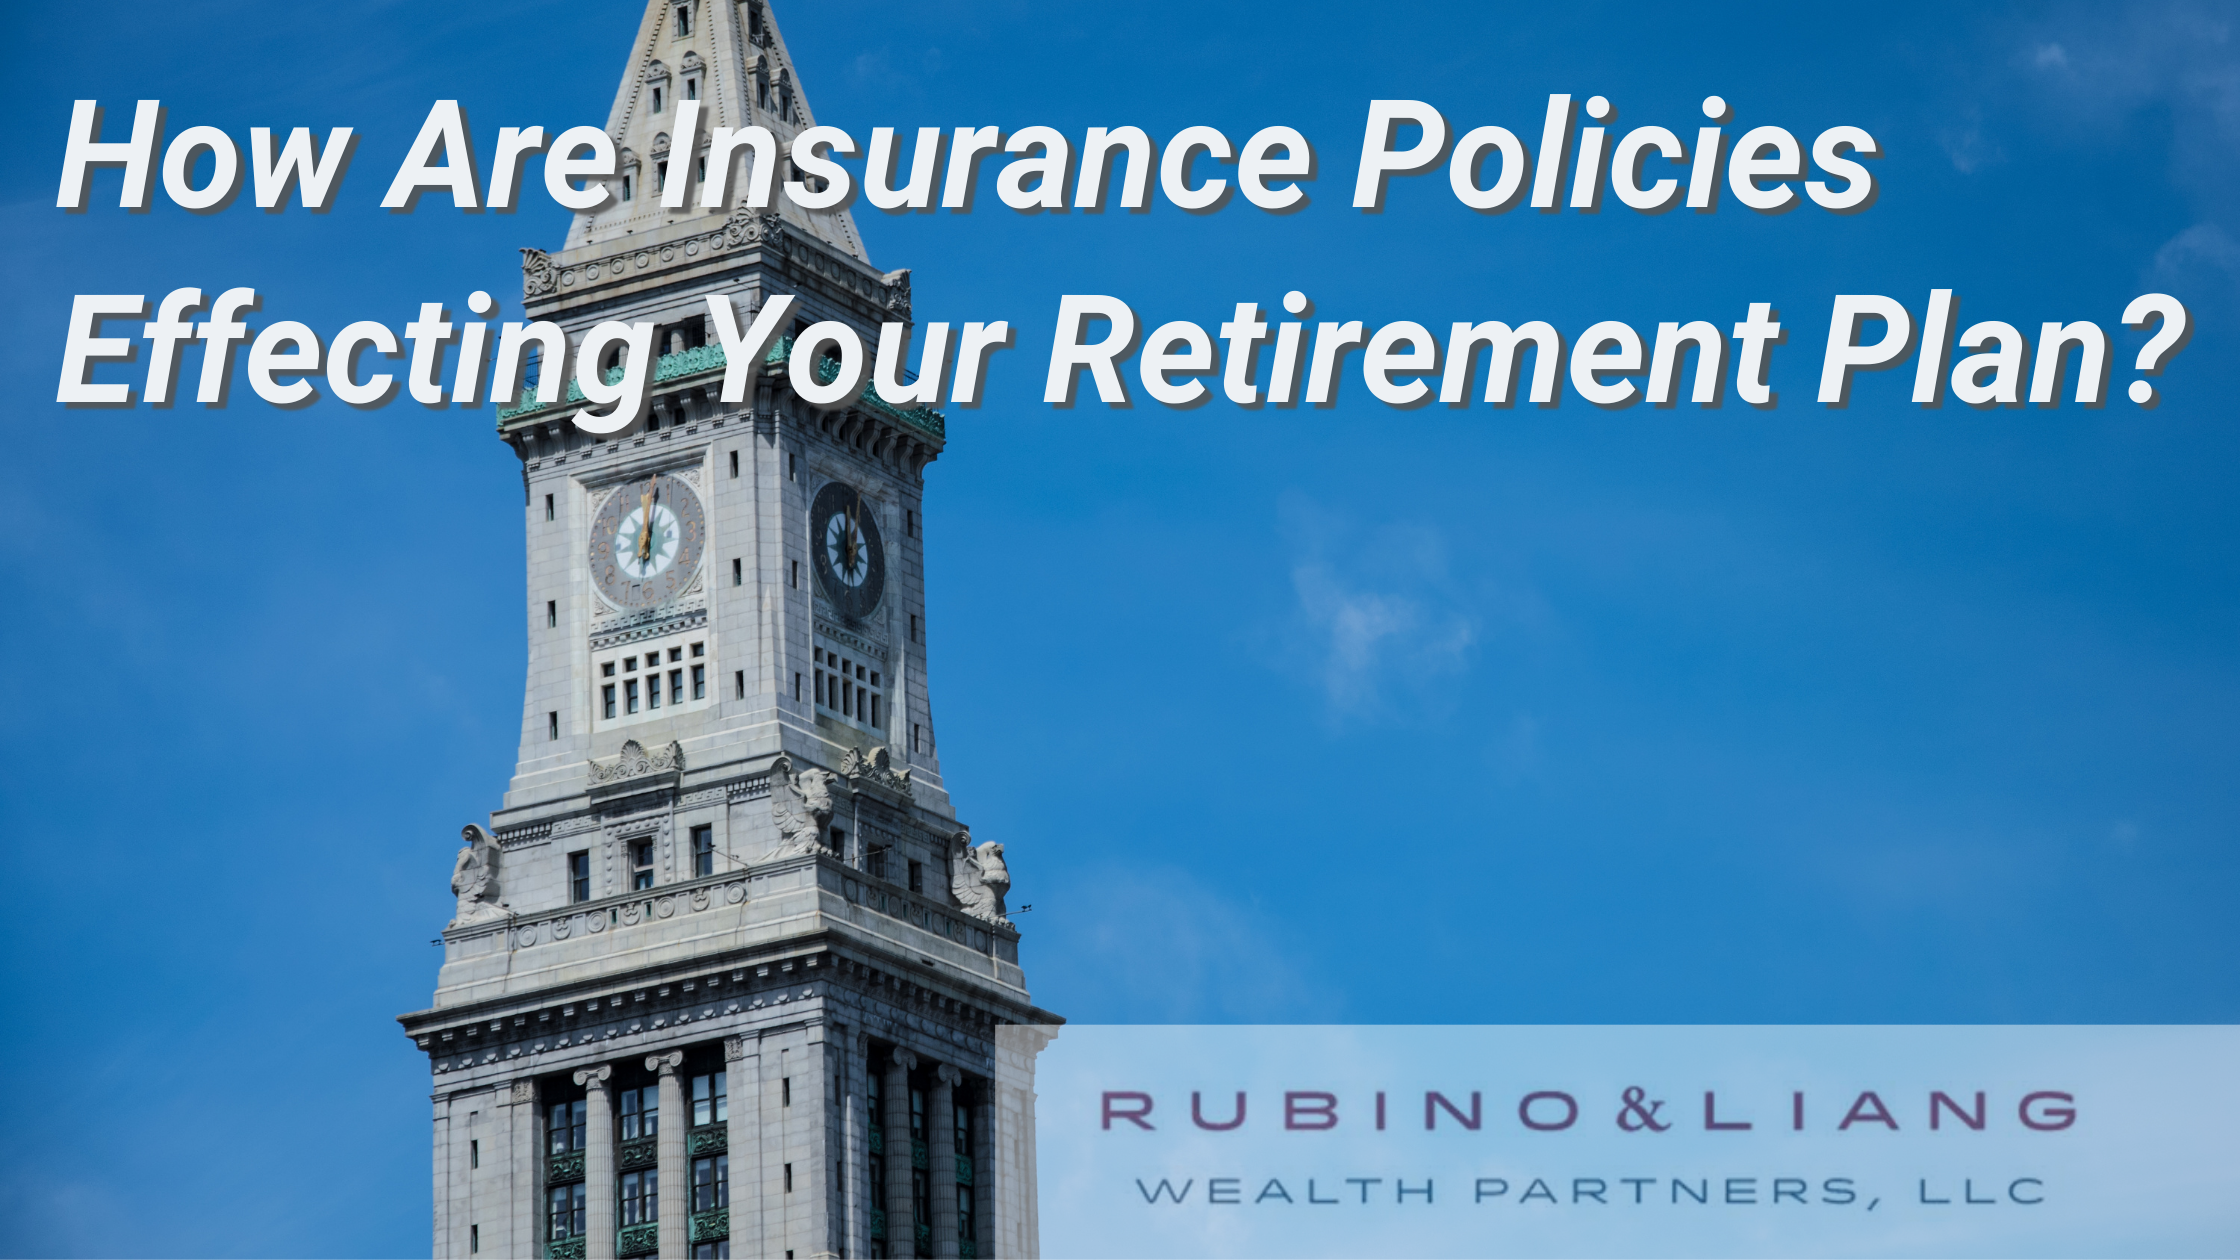 How Do Insurance Policies Effect Your Retirement Plan?